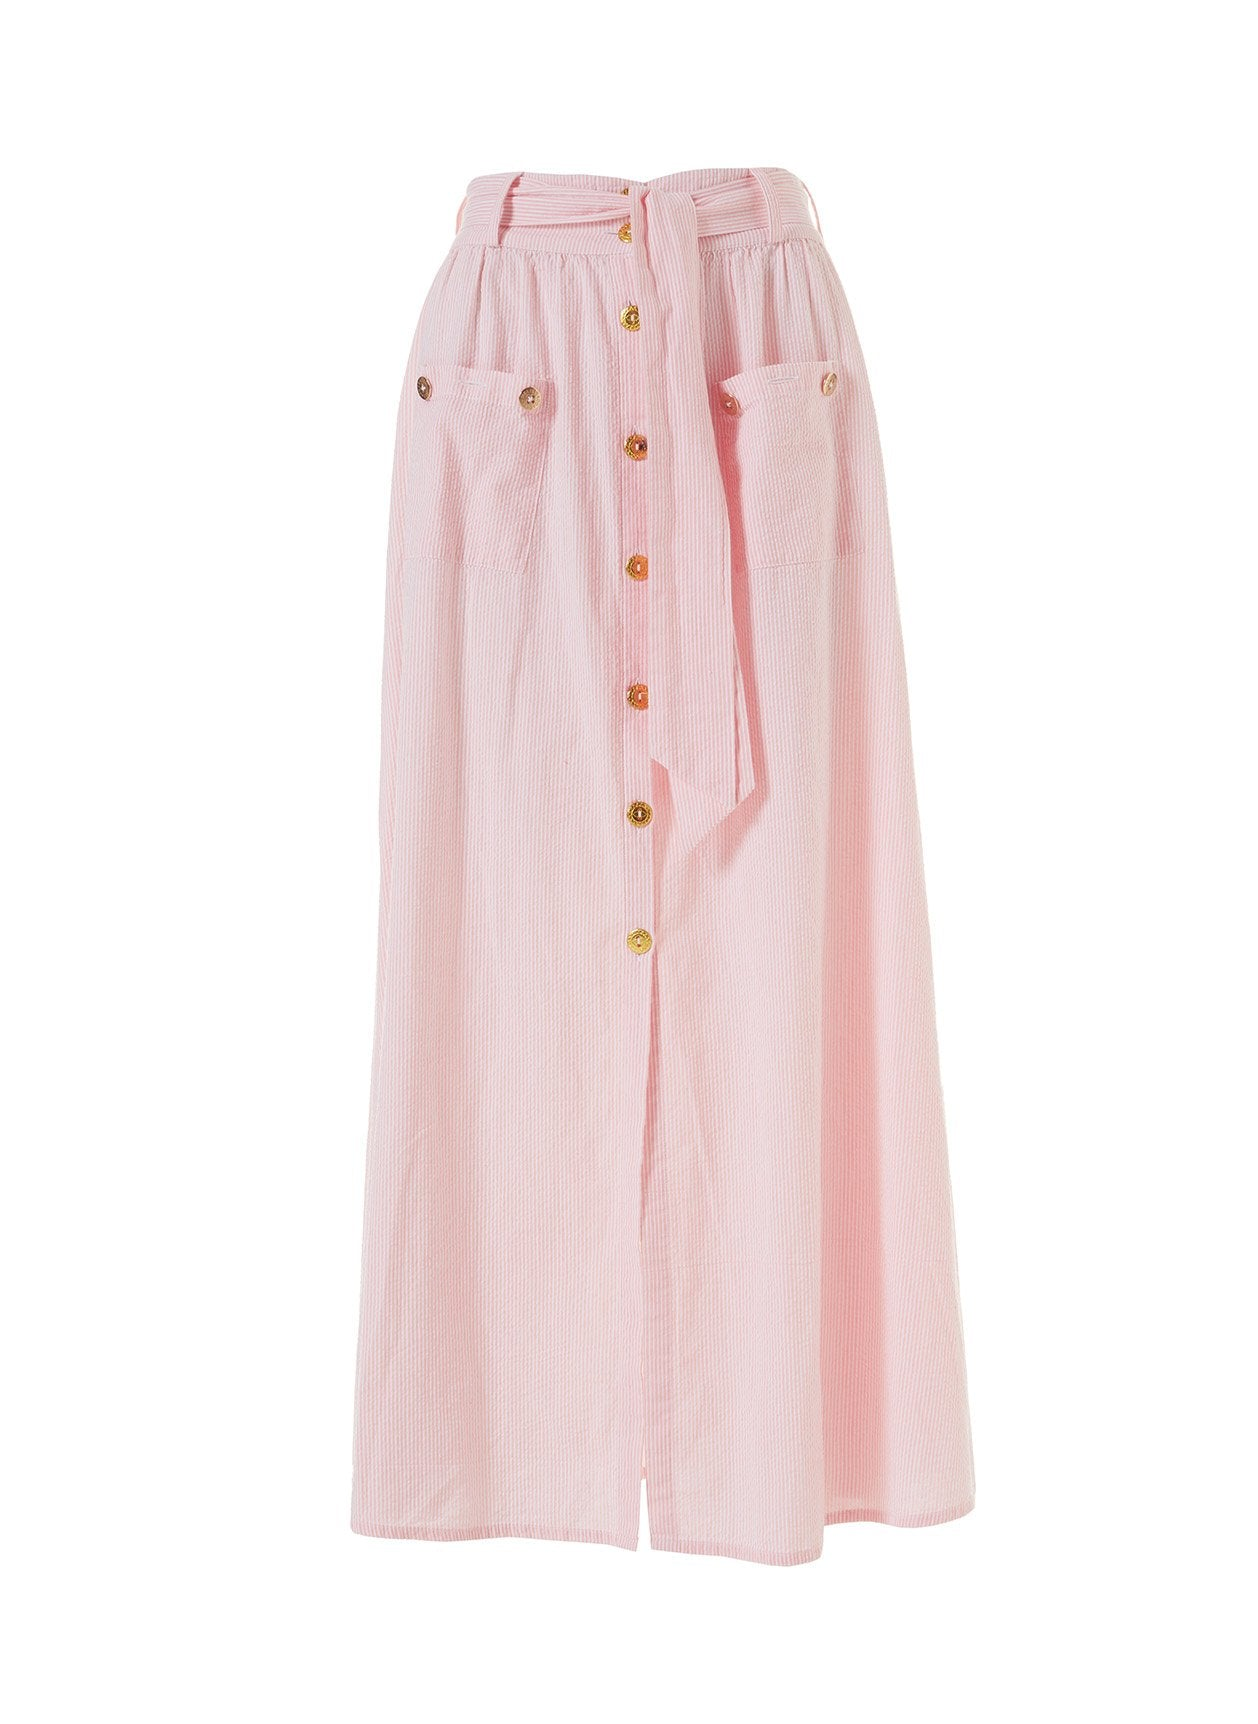 Alisa Blush Stripe Button Down Belted Maxi Skirt 2020